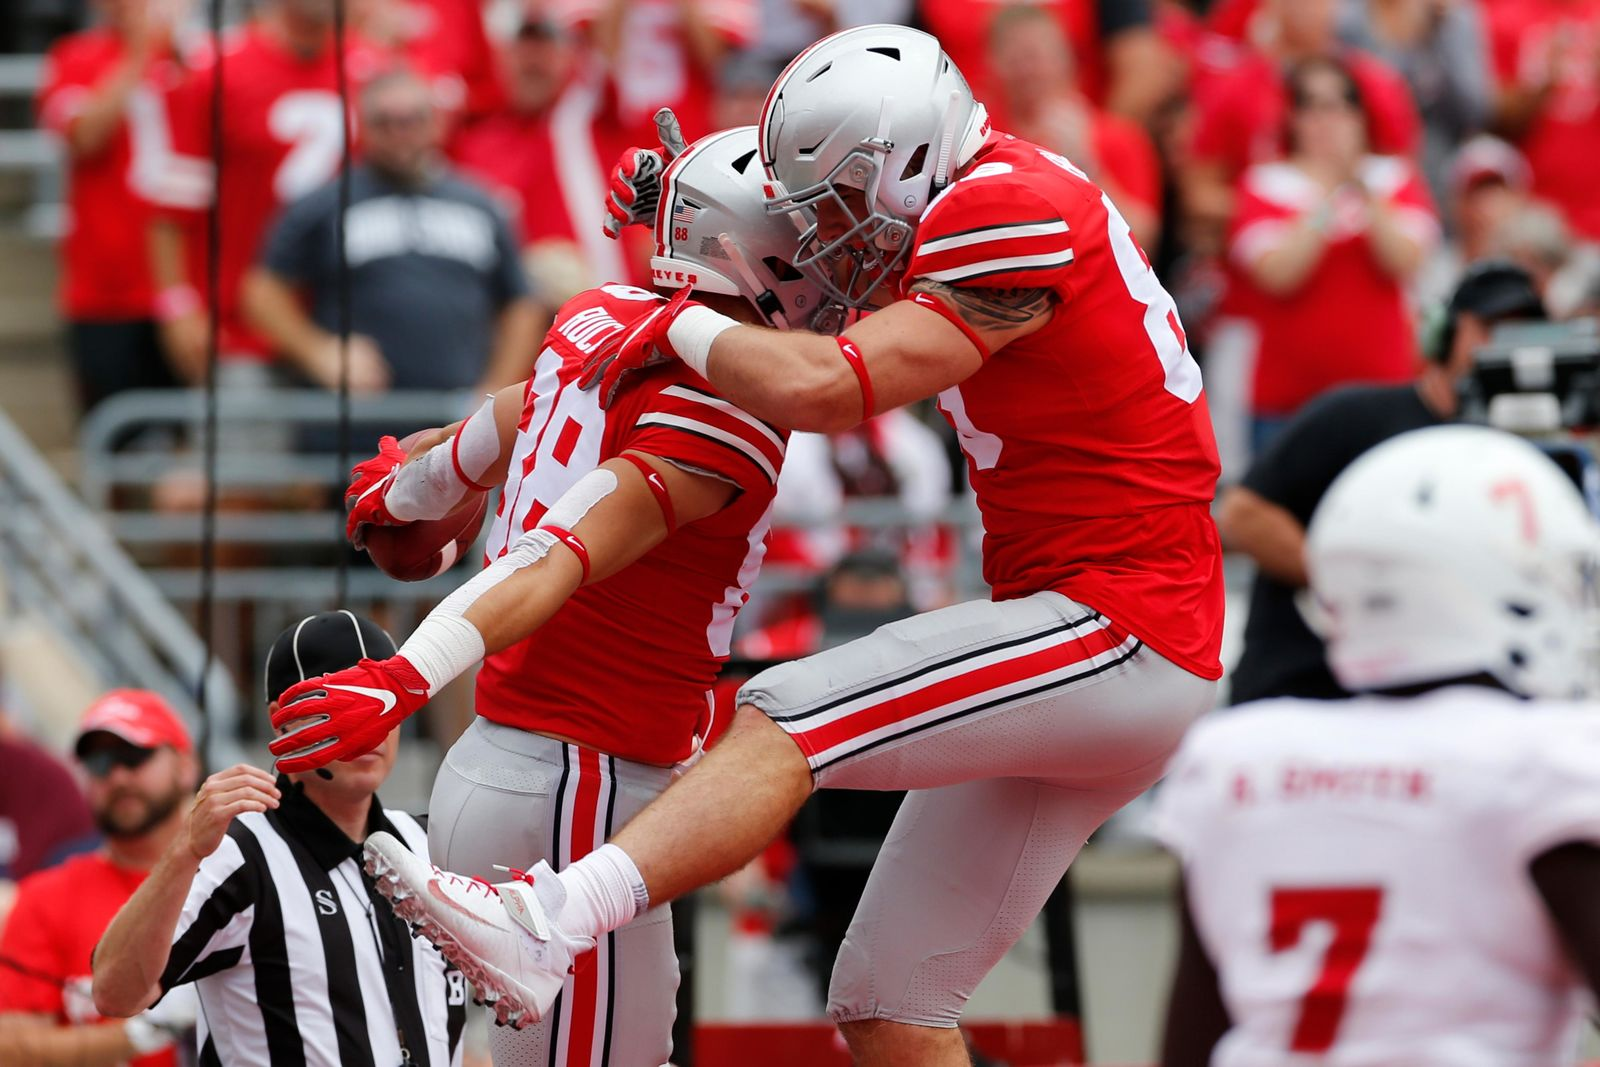 Ohio State tight end Jeremy Ruckert, left, celebrates his touchdown against Florida Atlantic with teammate tight end Luke Farrell during the first half of an NCAA college football game Saturday, Aug. 31, 2019, in Columbus, Ohio. (AP Photo/Jay LaPrete)